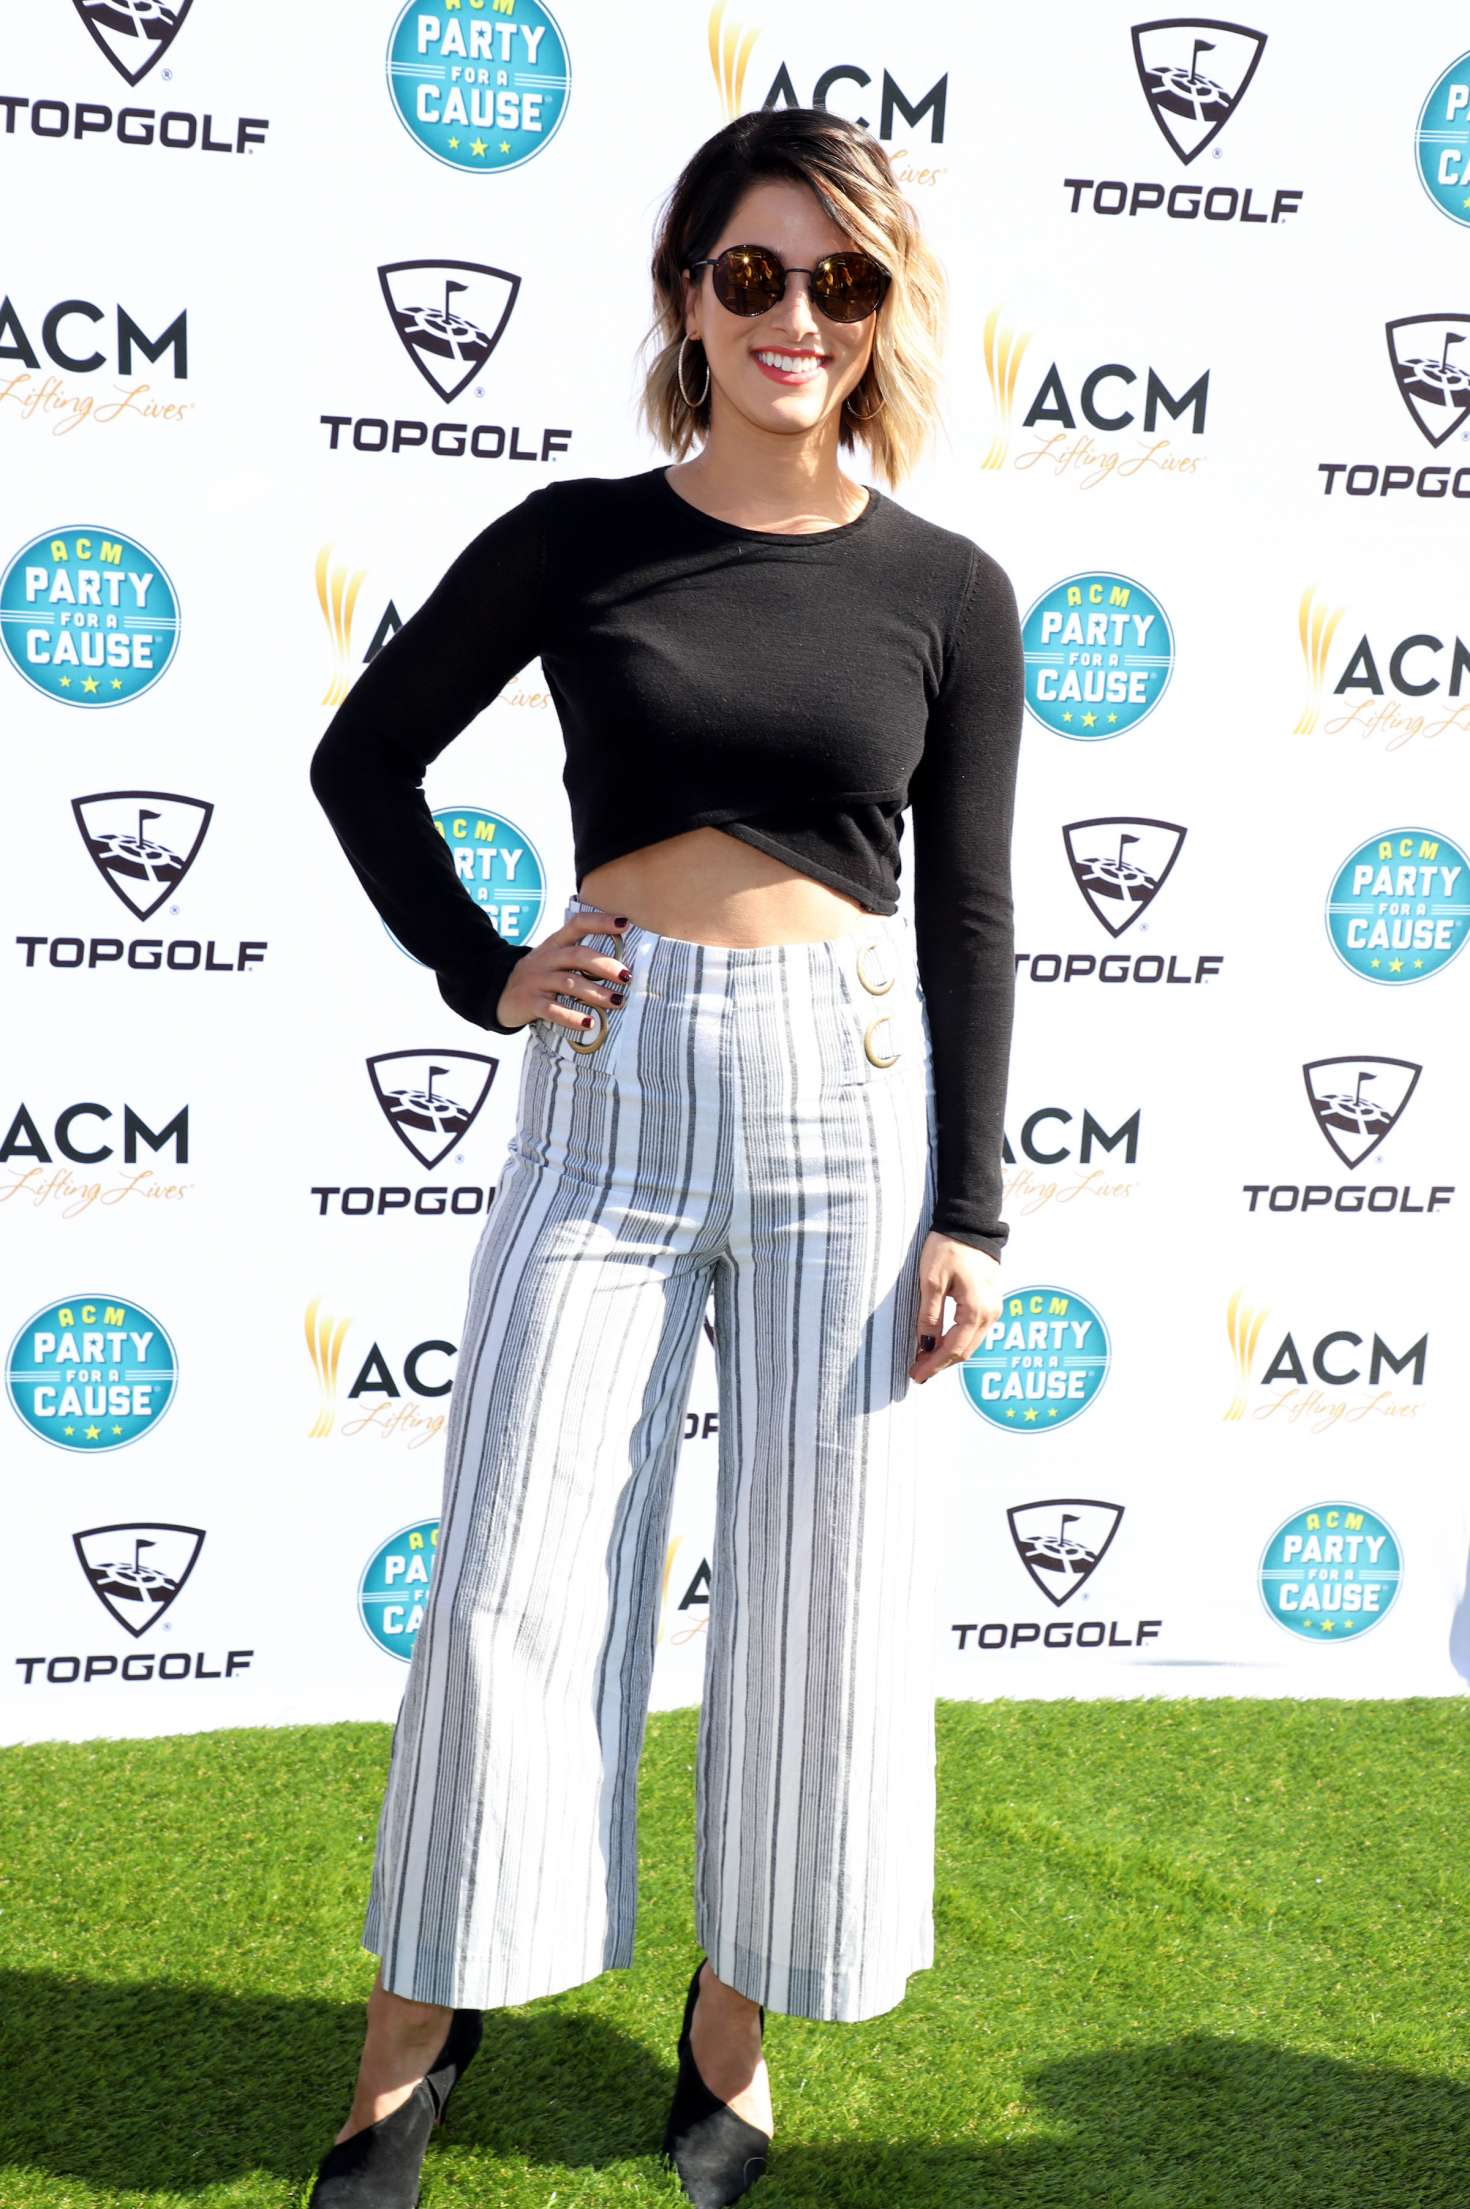 Cassadee Pope 2018 : Cassadee Pope: ACM Lifting Lives TOPGOLF Tee-Off -17